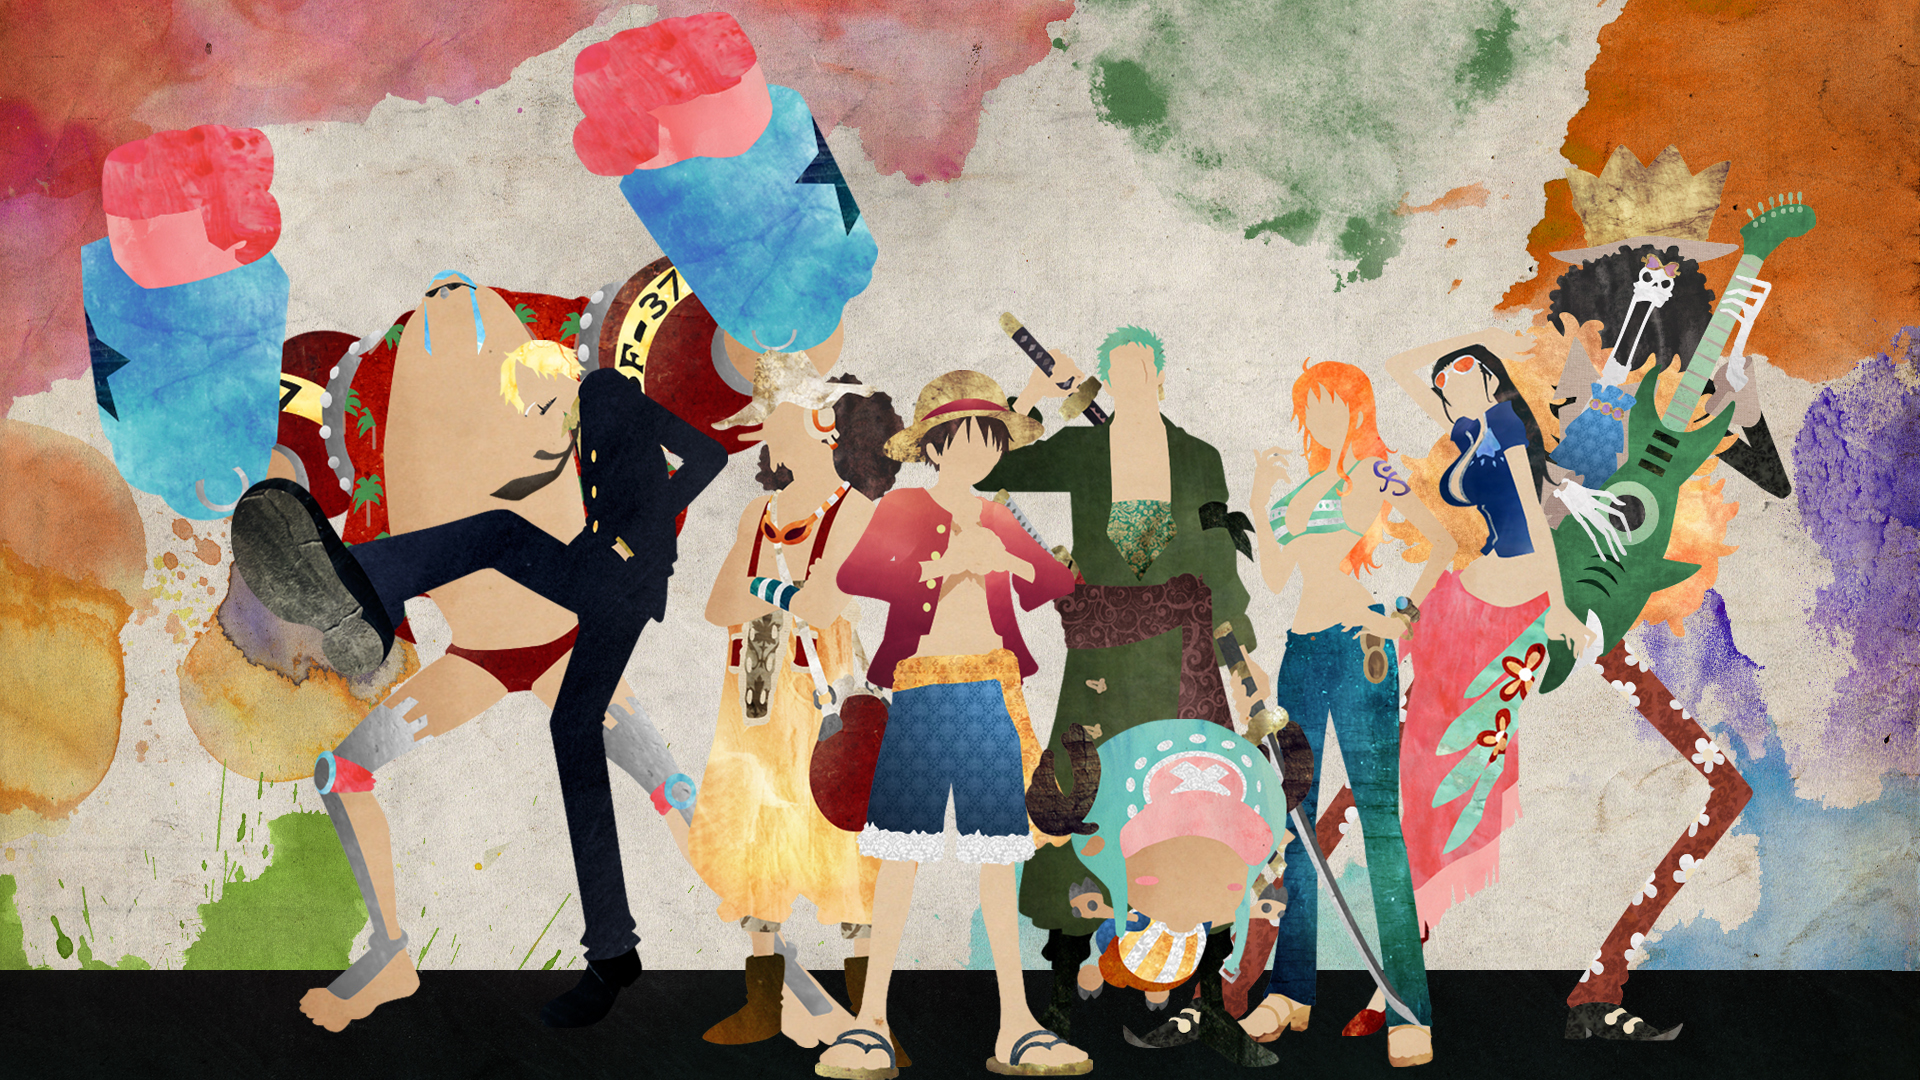 The Straw Hat Pirates One Piece By Doubleu42 On Deviantart